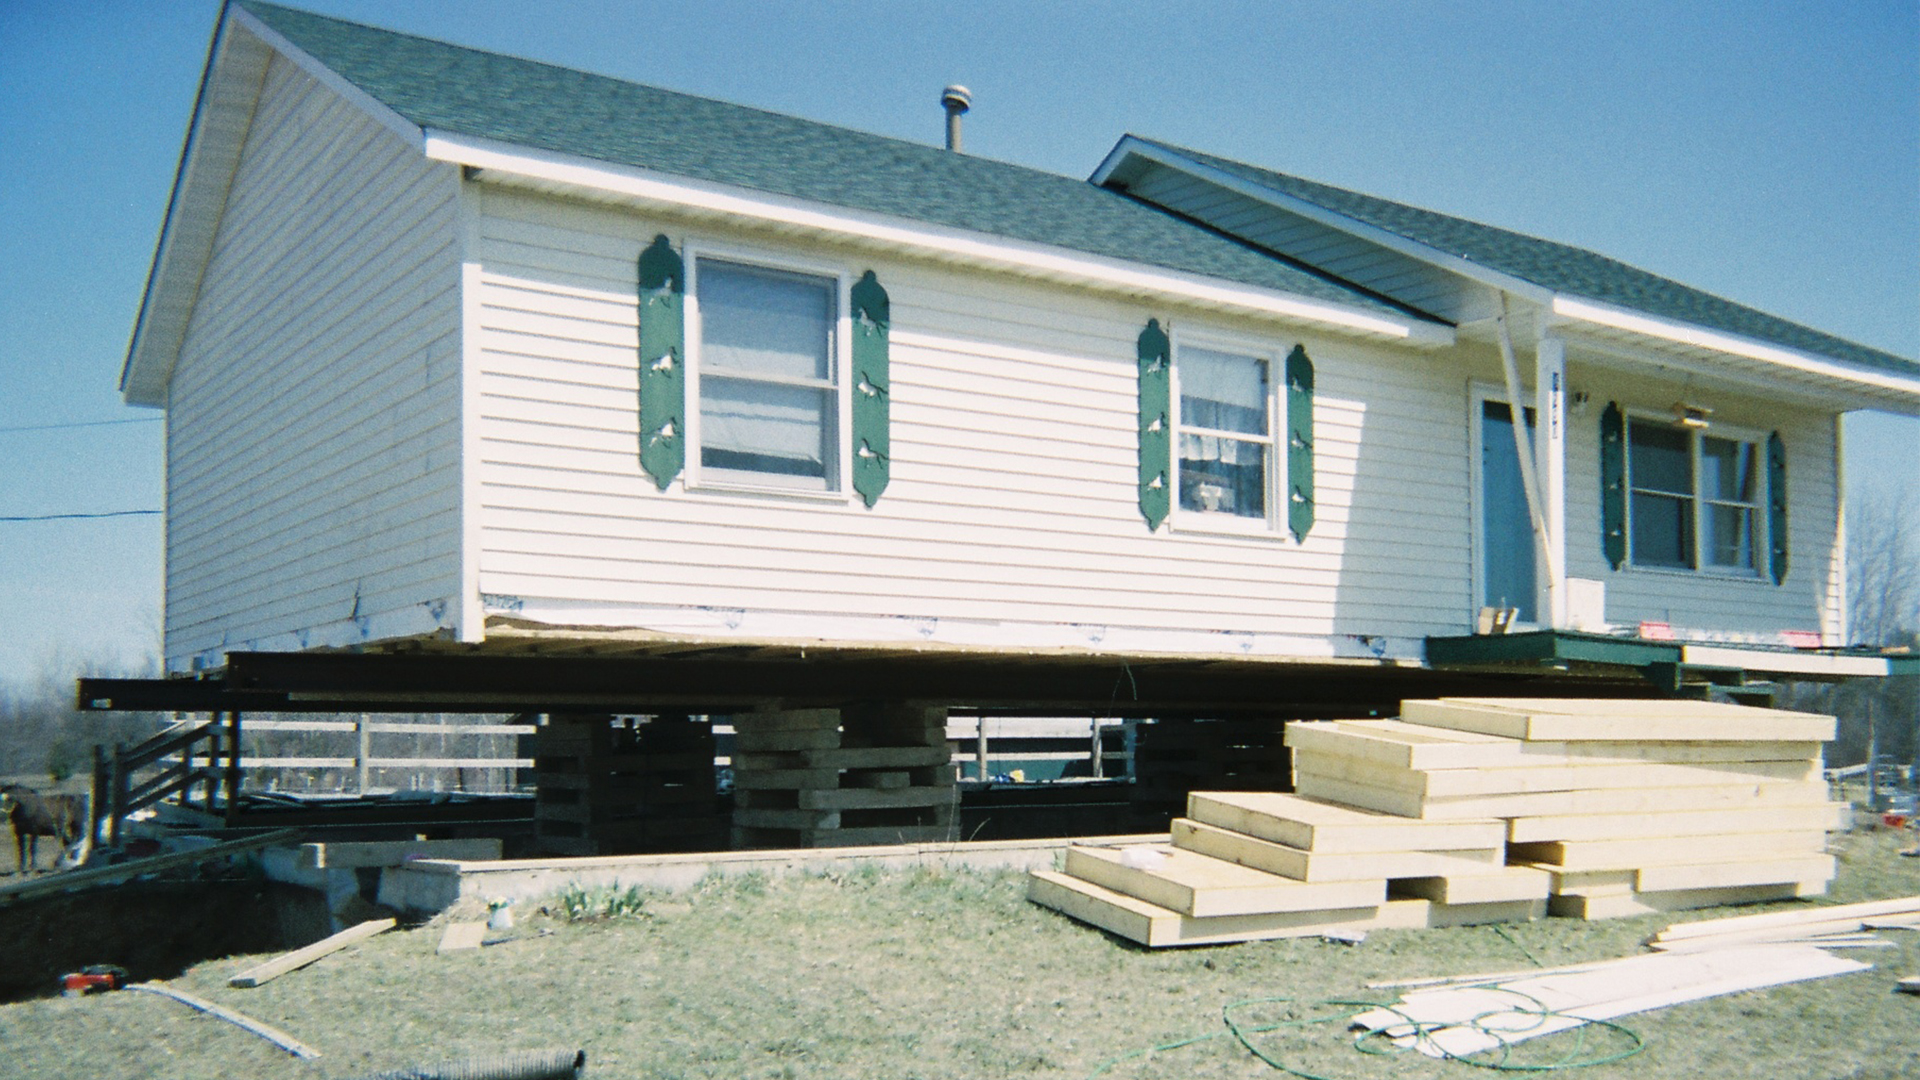 Ishpeming Residential & Commercial Construction